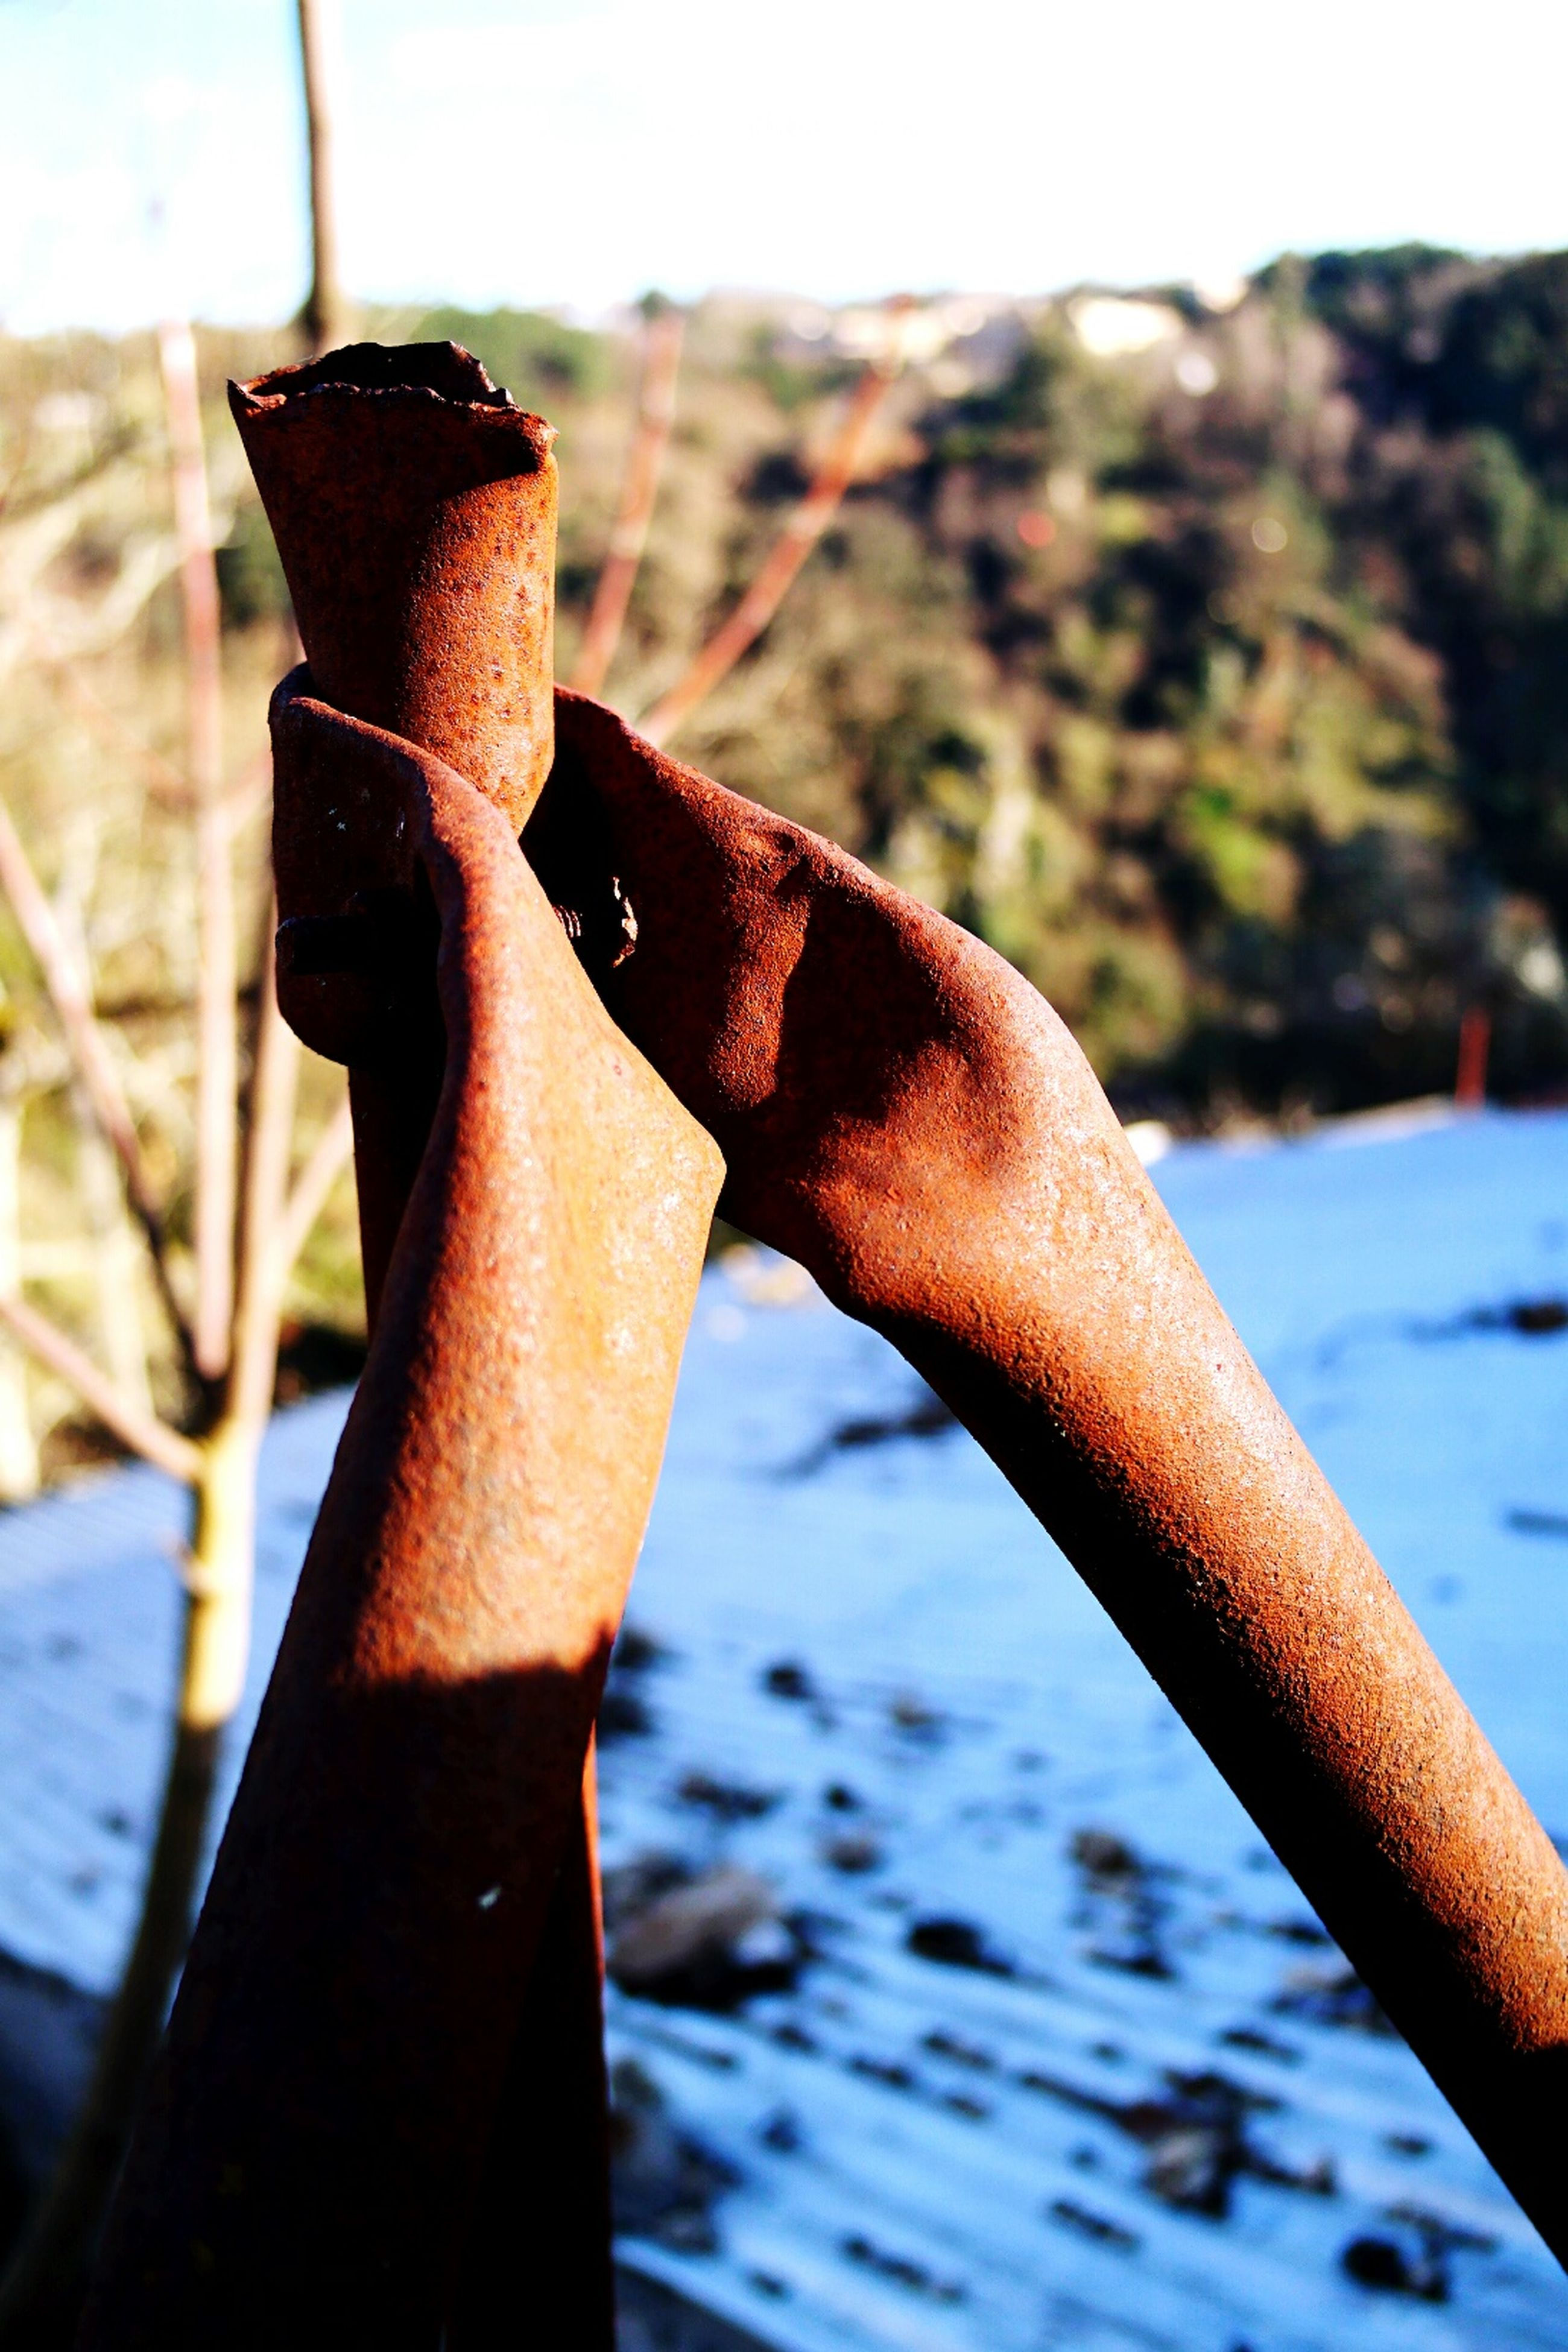 person, part of, focus on foreground, close-up, cropped, metal, holding, water, human finger, selective focus, day, personal perspective, metallic, outdoors, sky, rusty, river